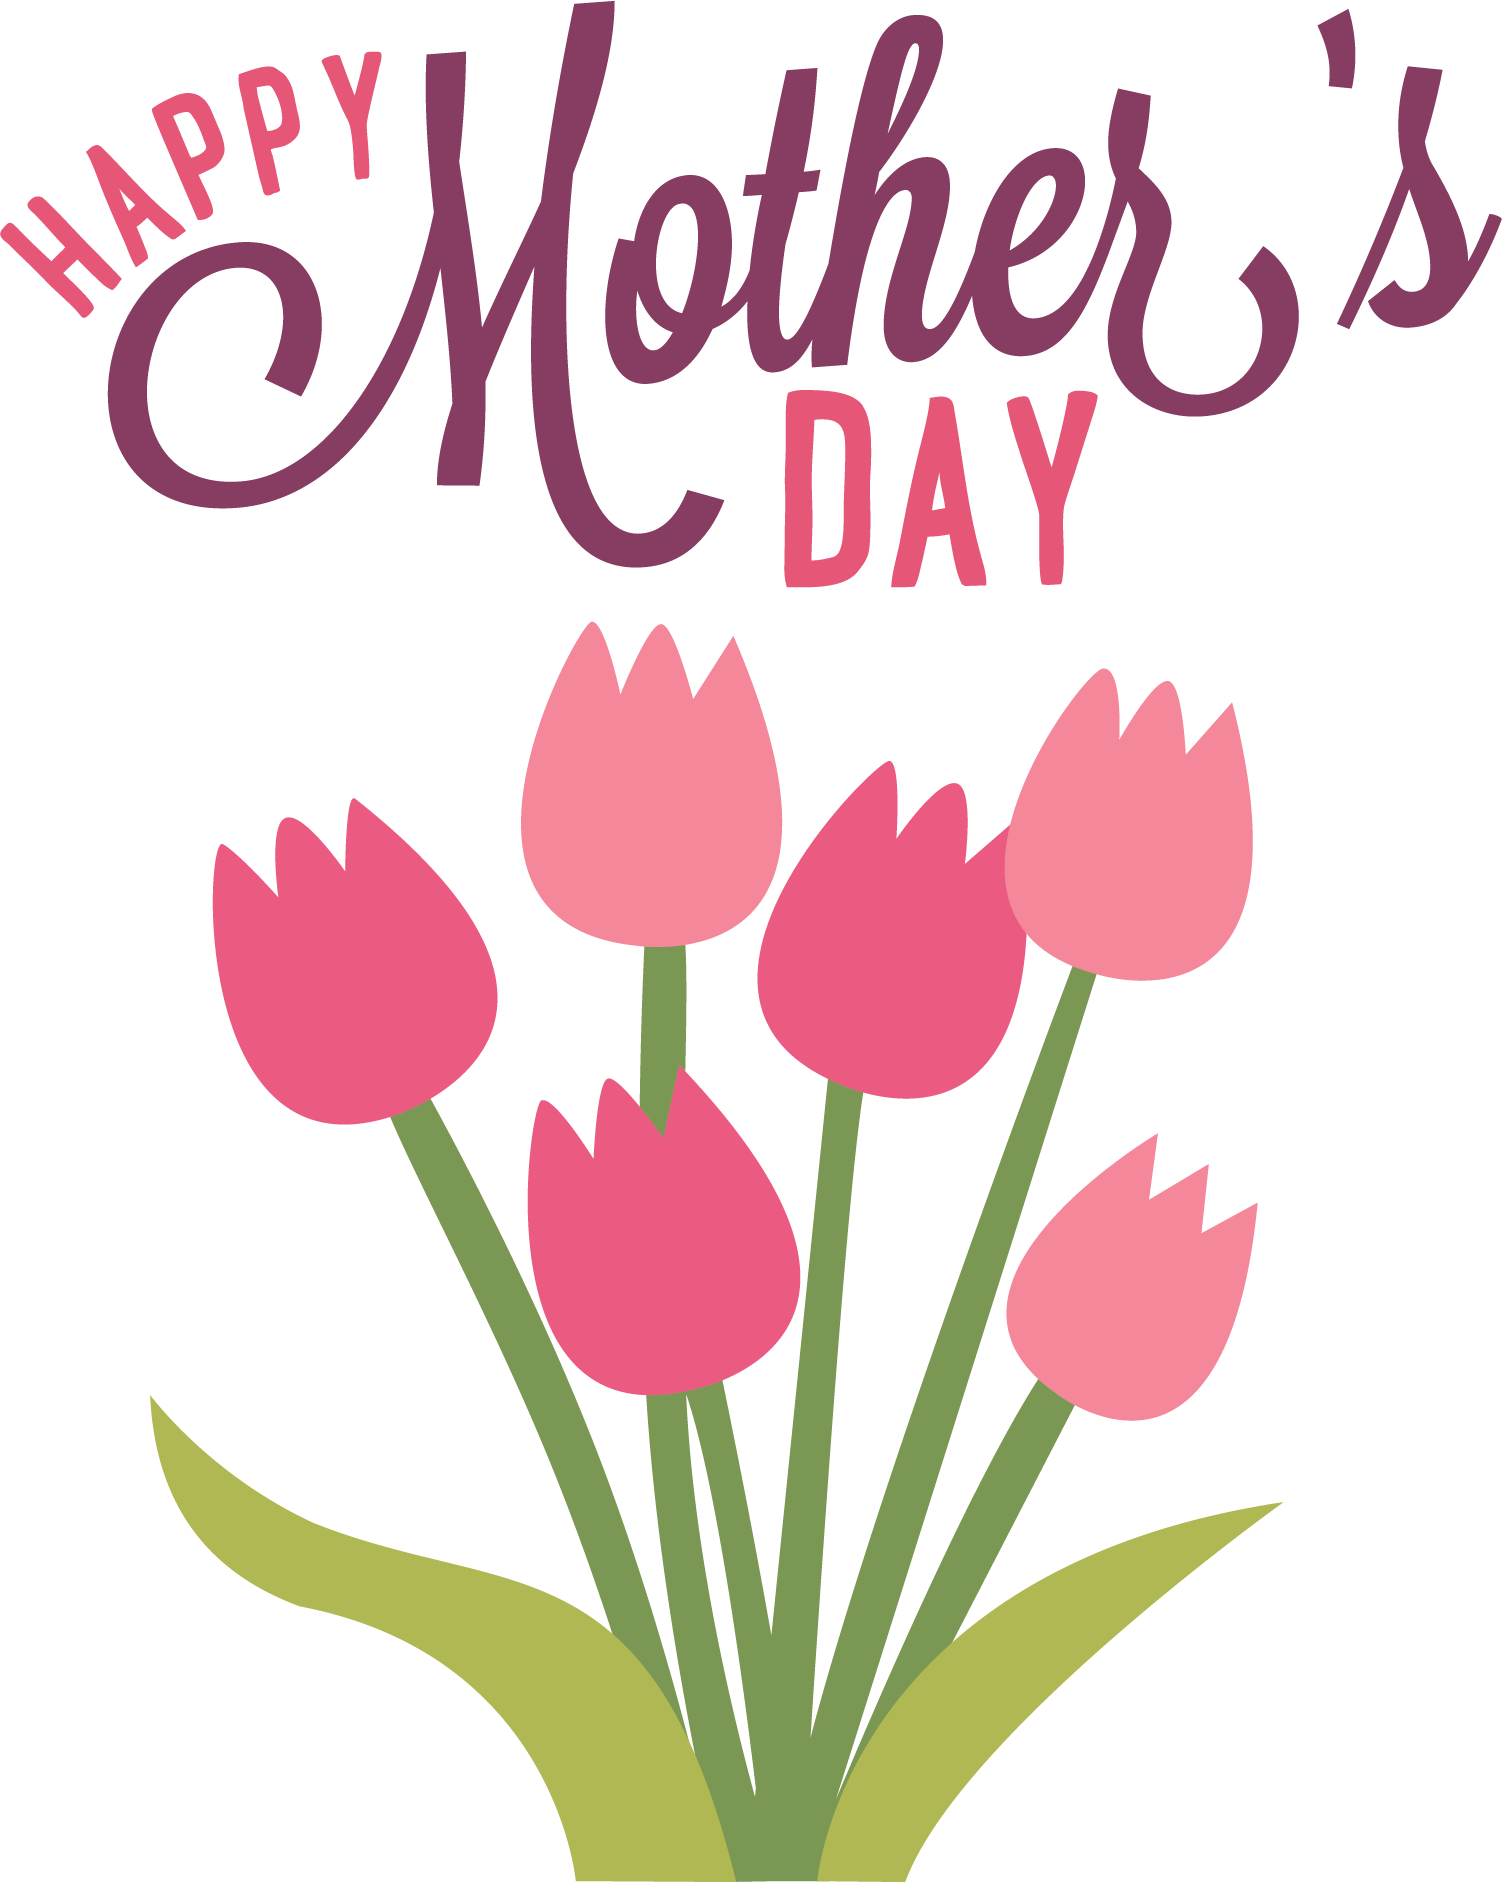 Happy mother-s day clipart images graphic freeuse download 43+ Mothers Day Clipart | ClipartLook graphic freeuse download